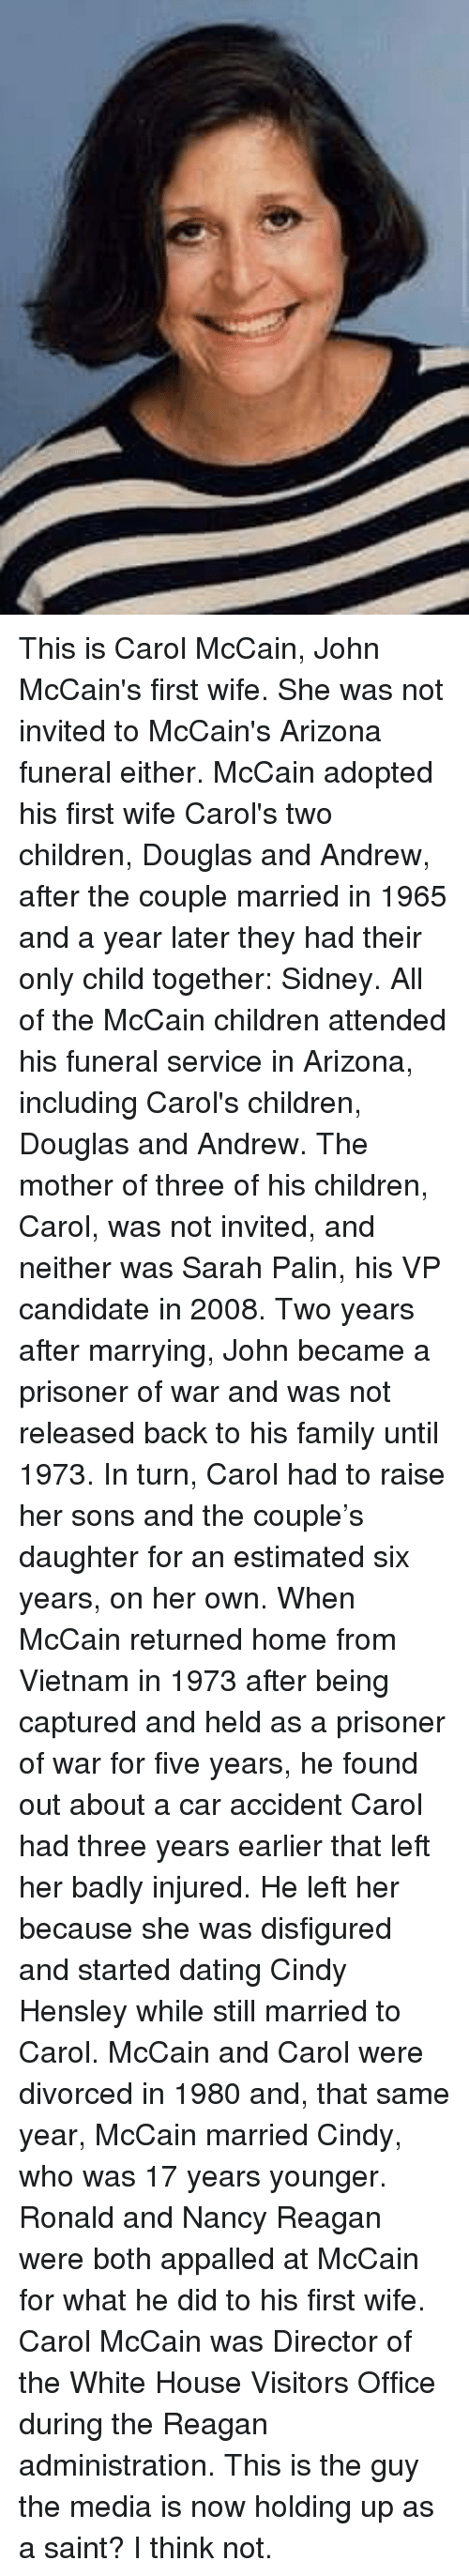 Sarah Palin: This is Carol McCain, John McCain's first wife. She was not invited to McCain's Arizona funeral either. McCain adopted his first wife Carol's two children, Douglas and Andrew, after the couple married in 1965 and a year later they had their only child together: Sidney. All of the McCain children attended his funeral service in Arizona, including Carol's children, Douglas and Andrew. The mother of three of his children, Carol, was not invited, and neither was Sarah Palin, his VP candidate in 2008.  Two years after marrying, John became a prisoner of war and was not released back to his family until 1973. In turn, Carol had to raise her sons and the couple's daughter for an estimated six years, on her own. When McCain returned home from Vietnam in 1973 after being captured and held as a prisoner of war for five years, he found out about a car accident Carol had three years earlier that left her badly injured.  He left her because she was disfigured and started dating Cindy Hensley while still married to Carol. McCain and Carol were divorced in 1980 and, that same year, McCain married Cindy, who was 17 years younger. Ronald and Nancy Reagan were both appalled at McCain for what he did to his first wife. Carol McCain was Director of the White House Visitors Office during the Reagan administration.  This is the guy the media is now holding up as a saint? I think not.